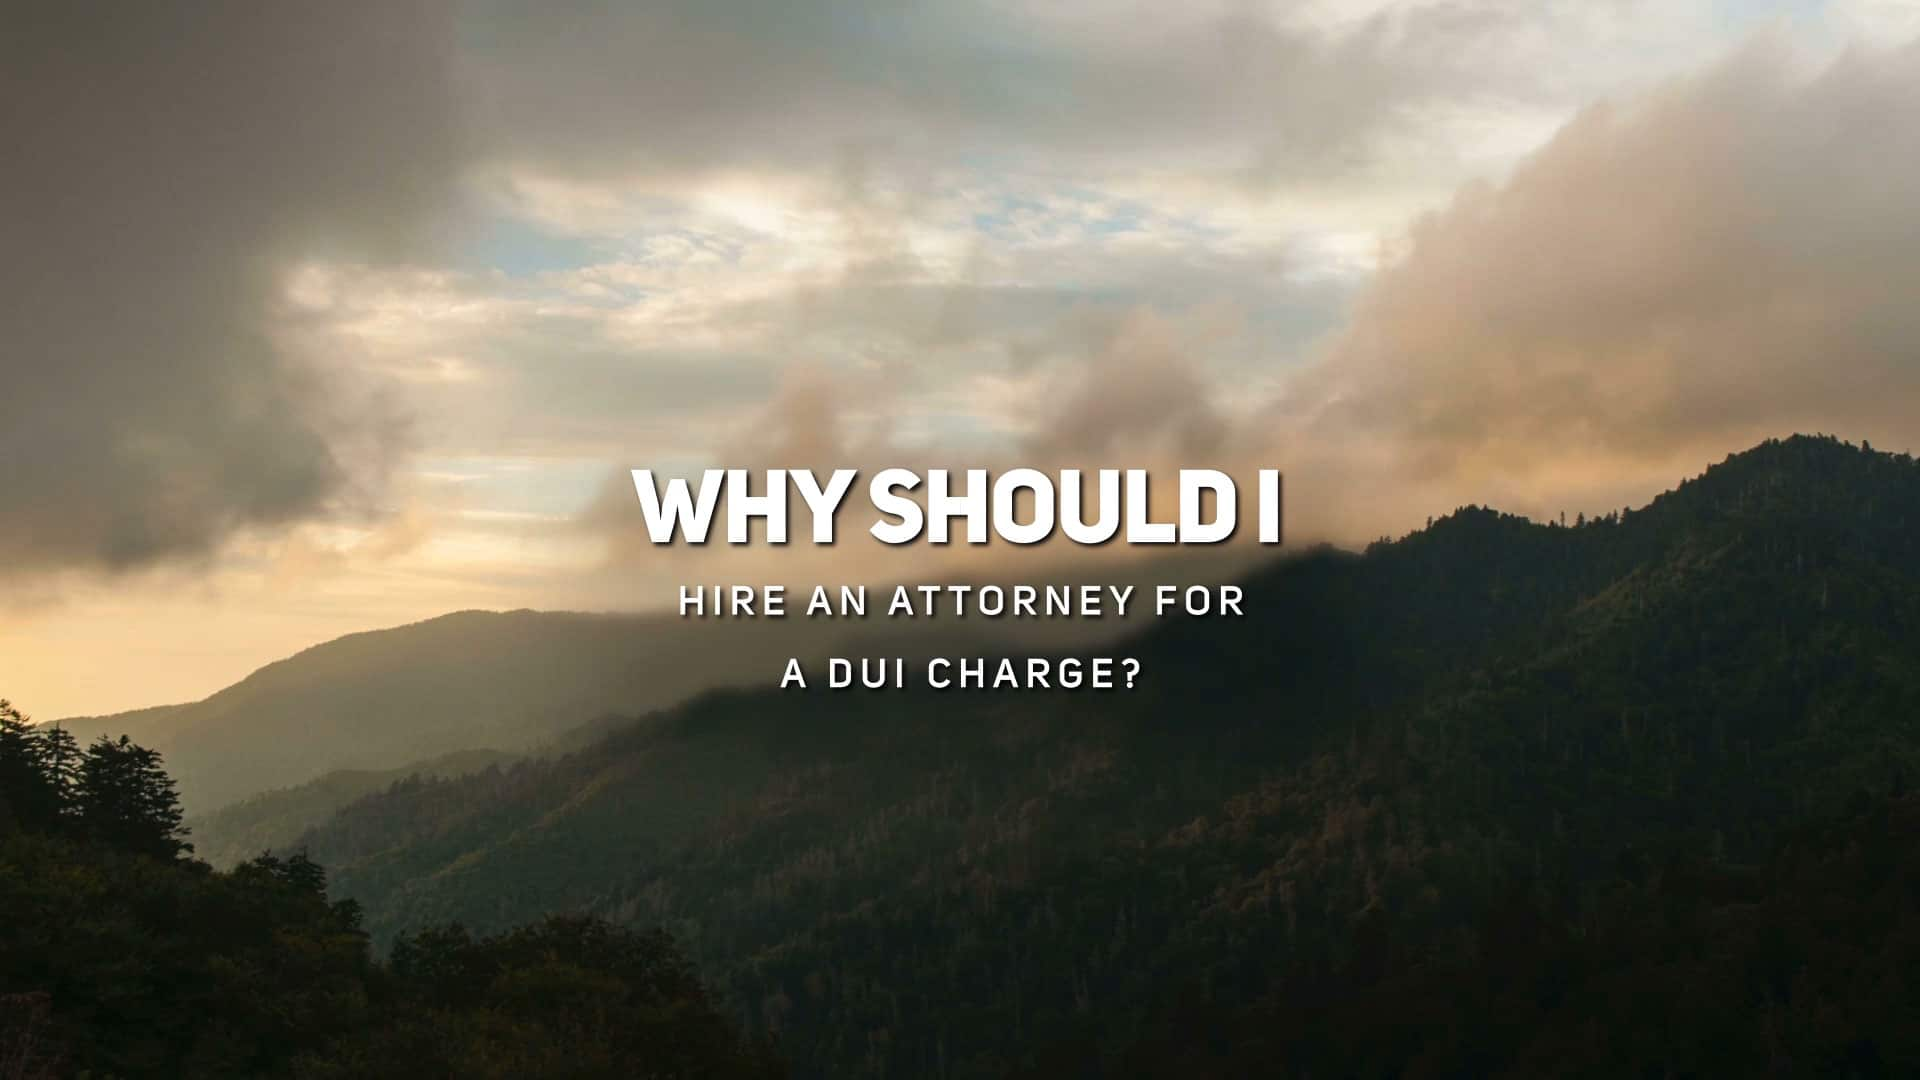 Why Should I Hire an Attorney for a DUI Charge